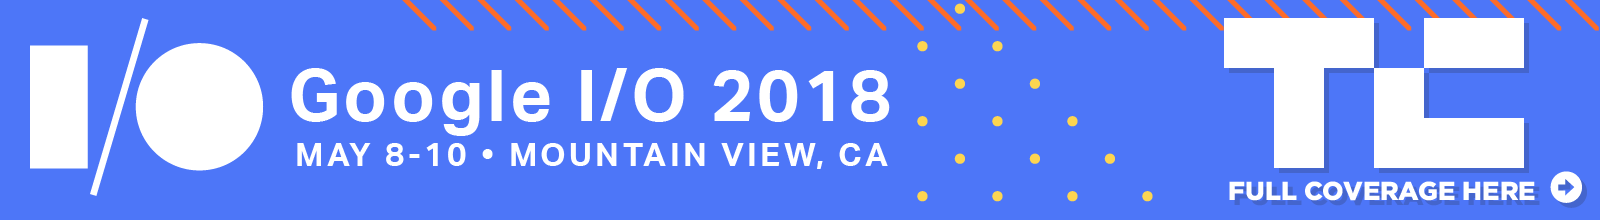 google-io-2018-banner.png